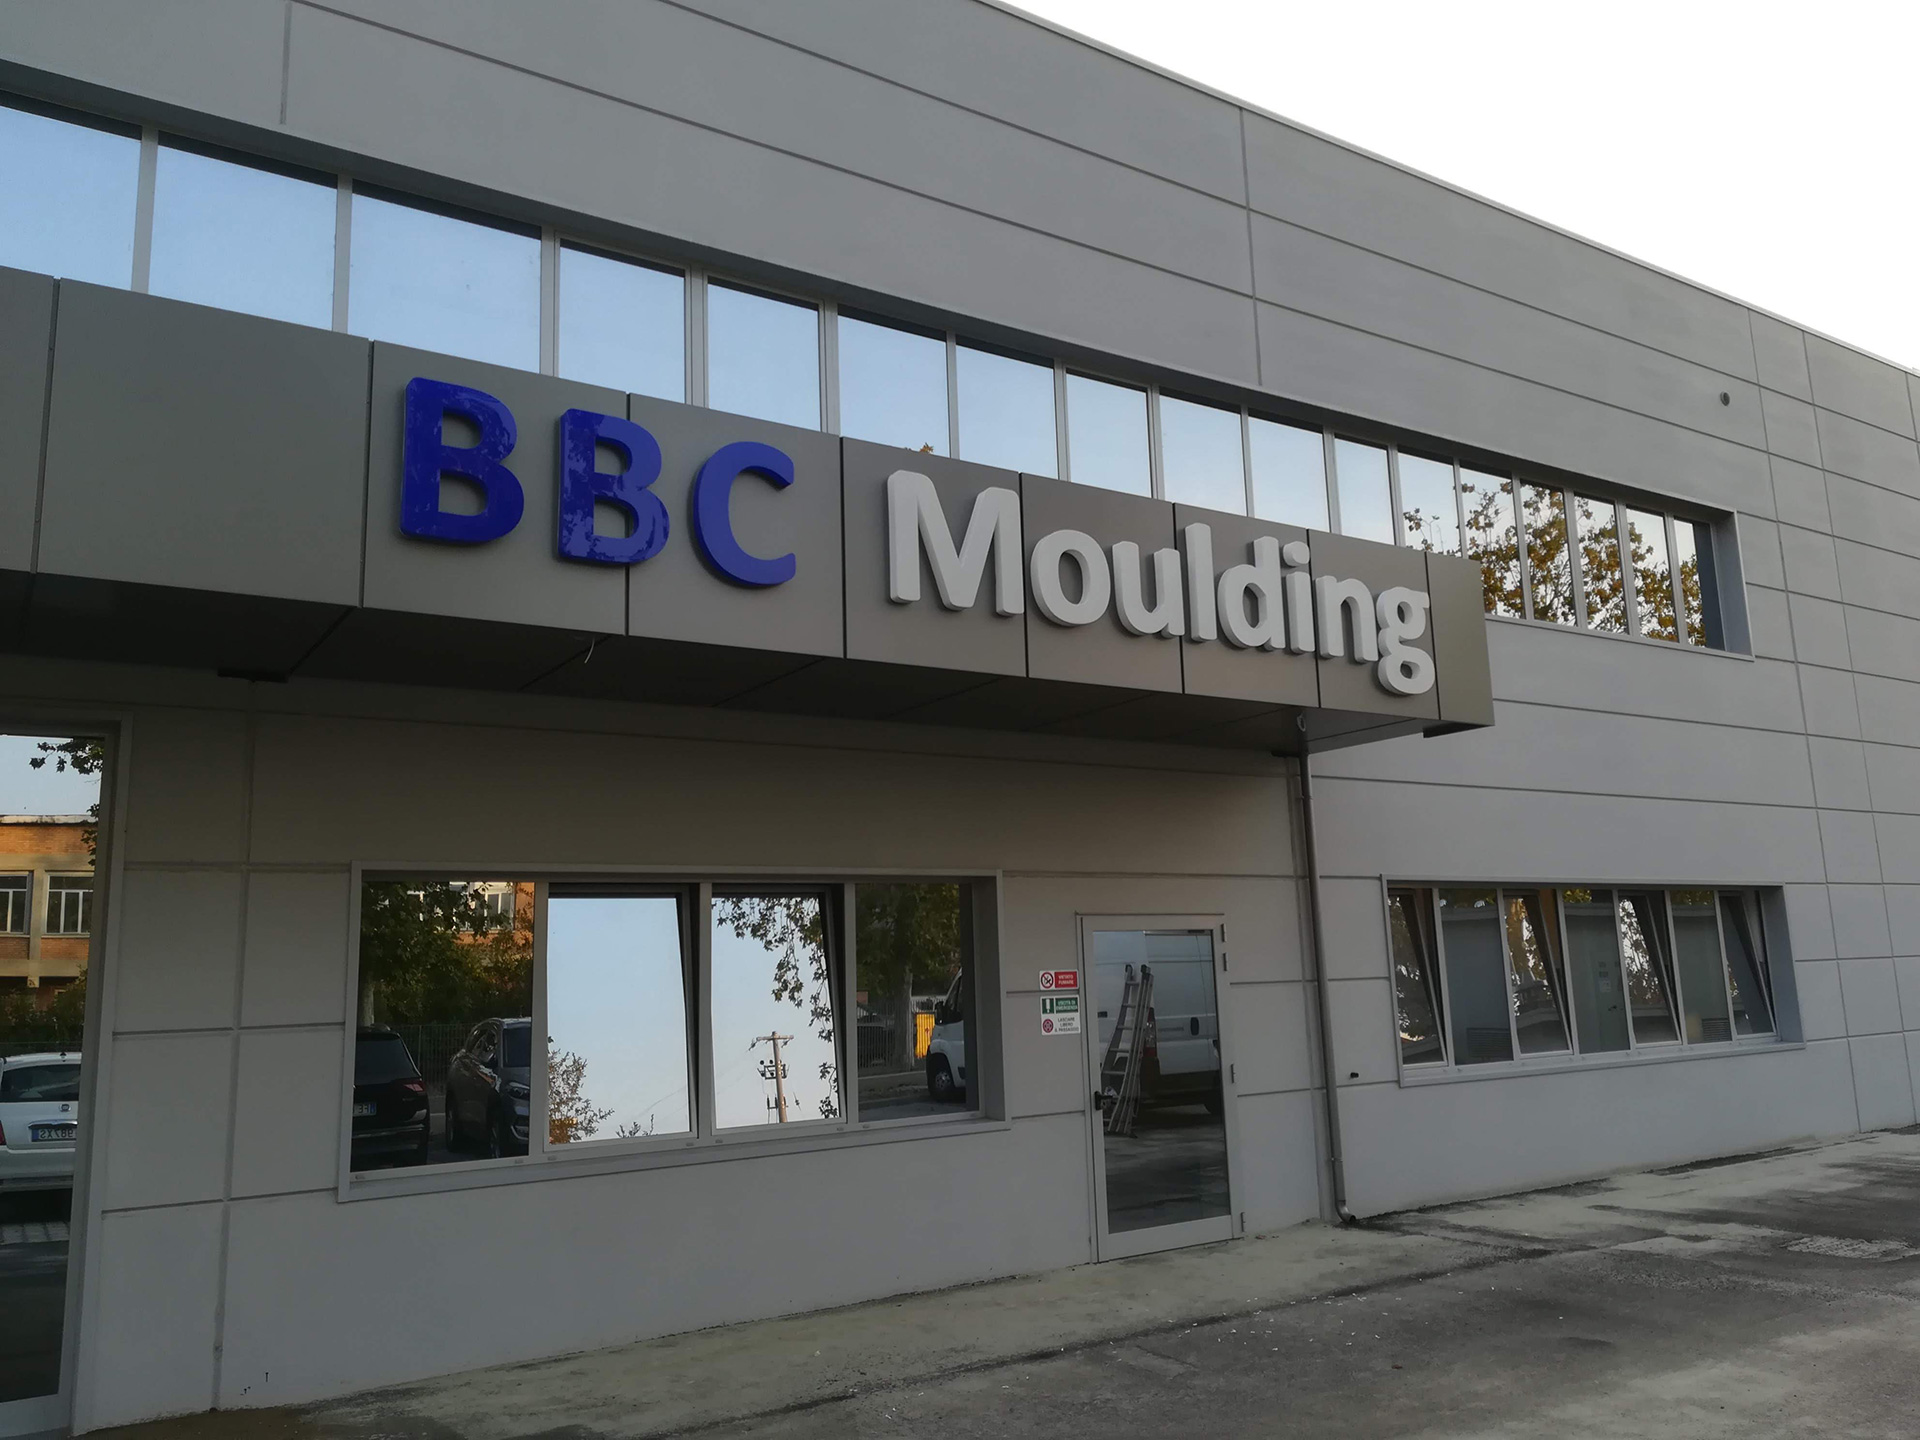 Insegne Led Bbc Moulding Fondello 15mm Sericart2